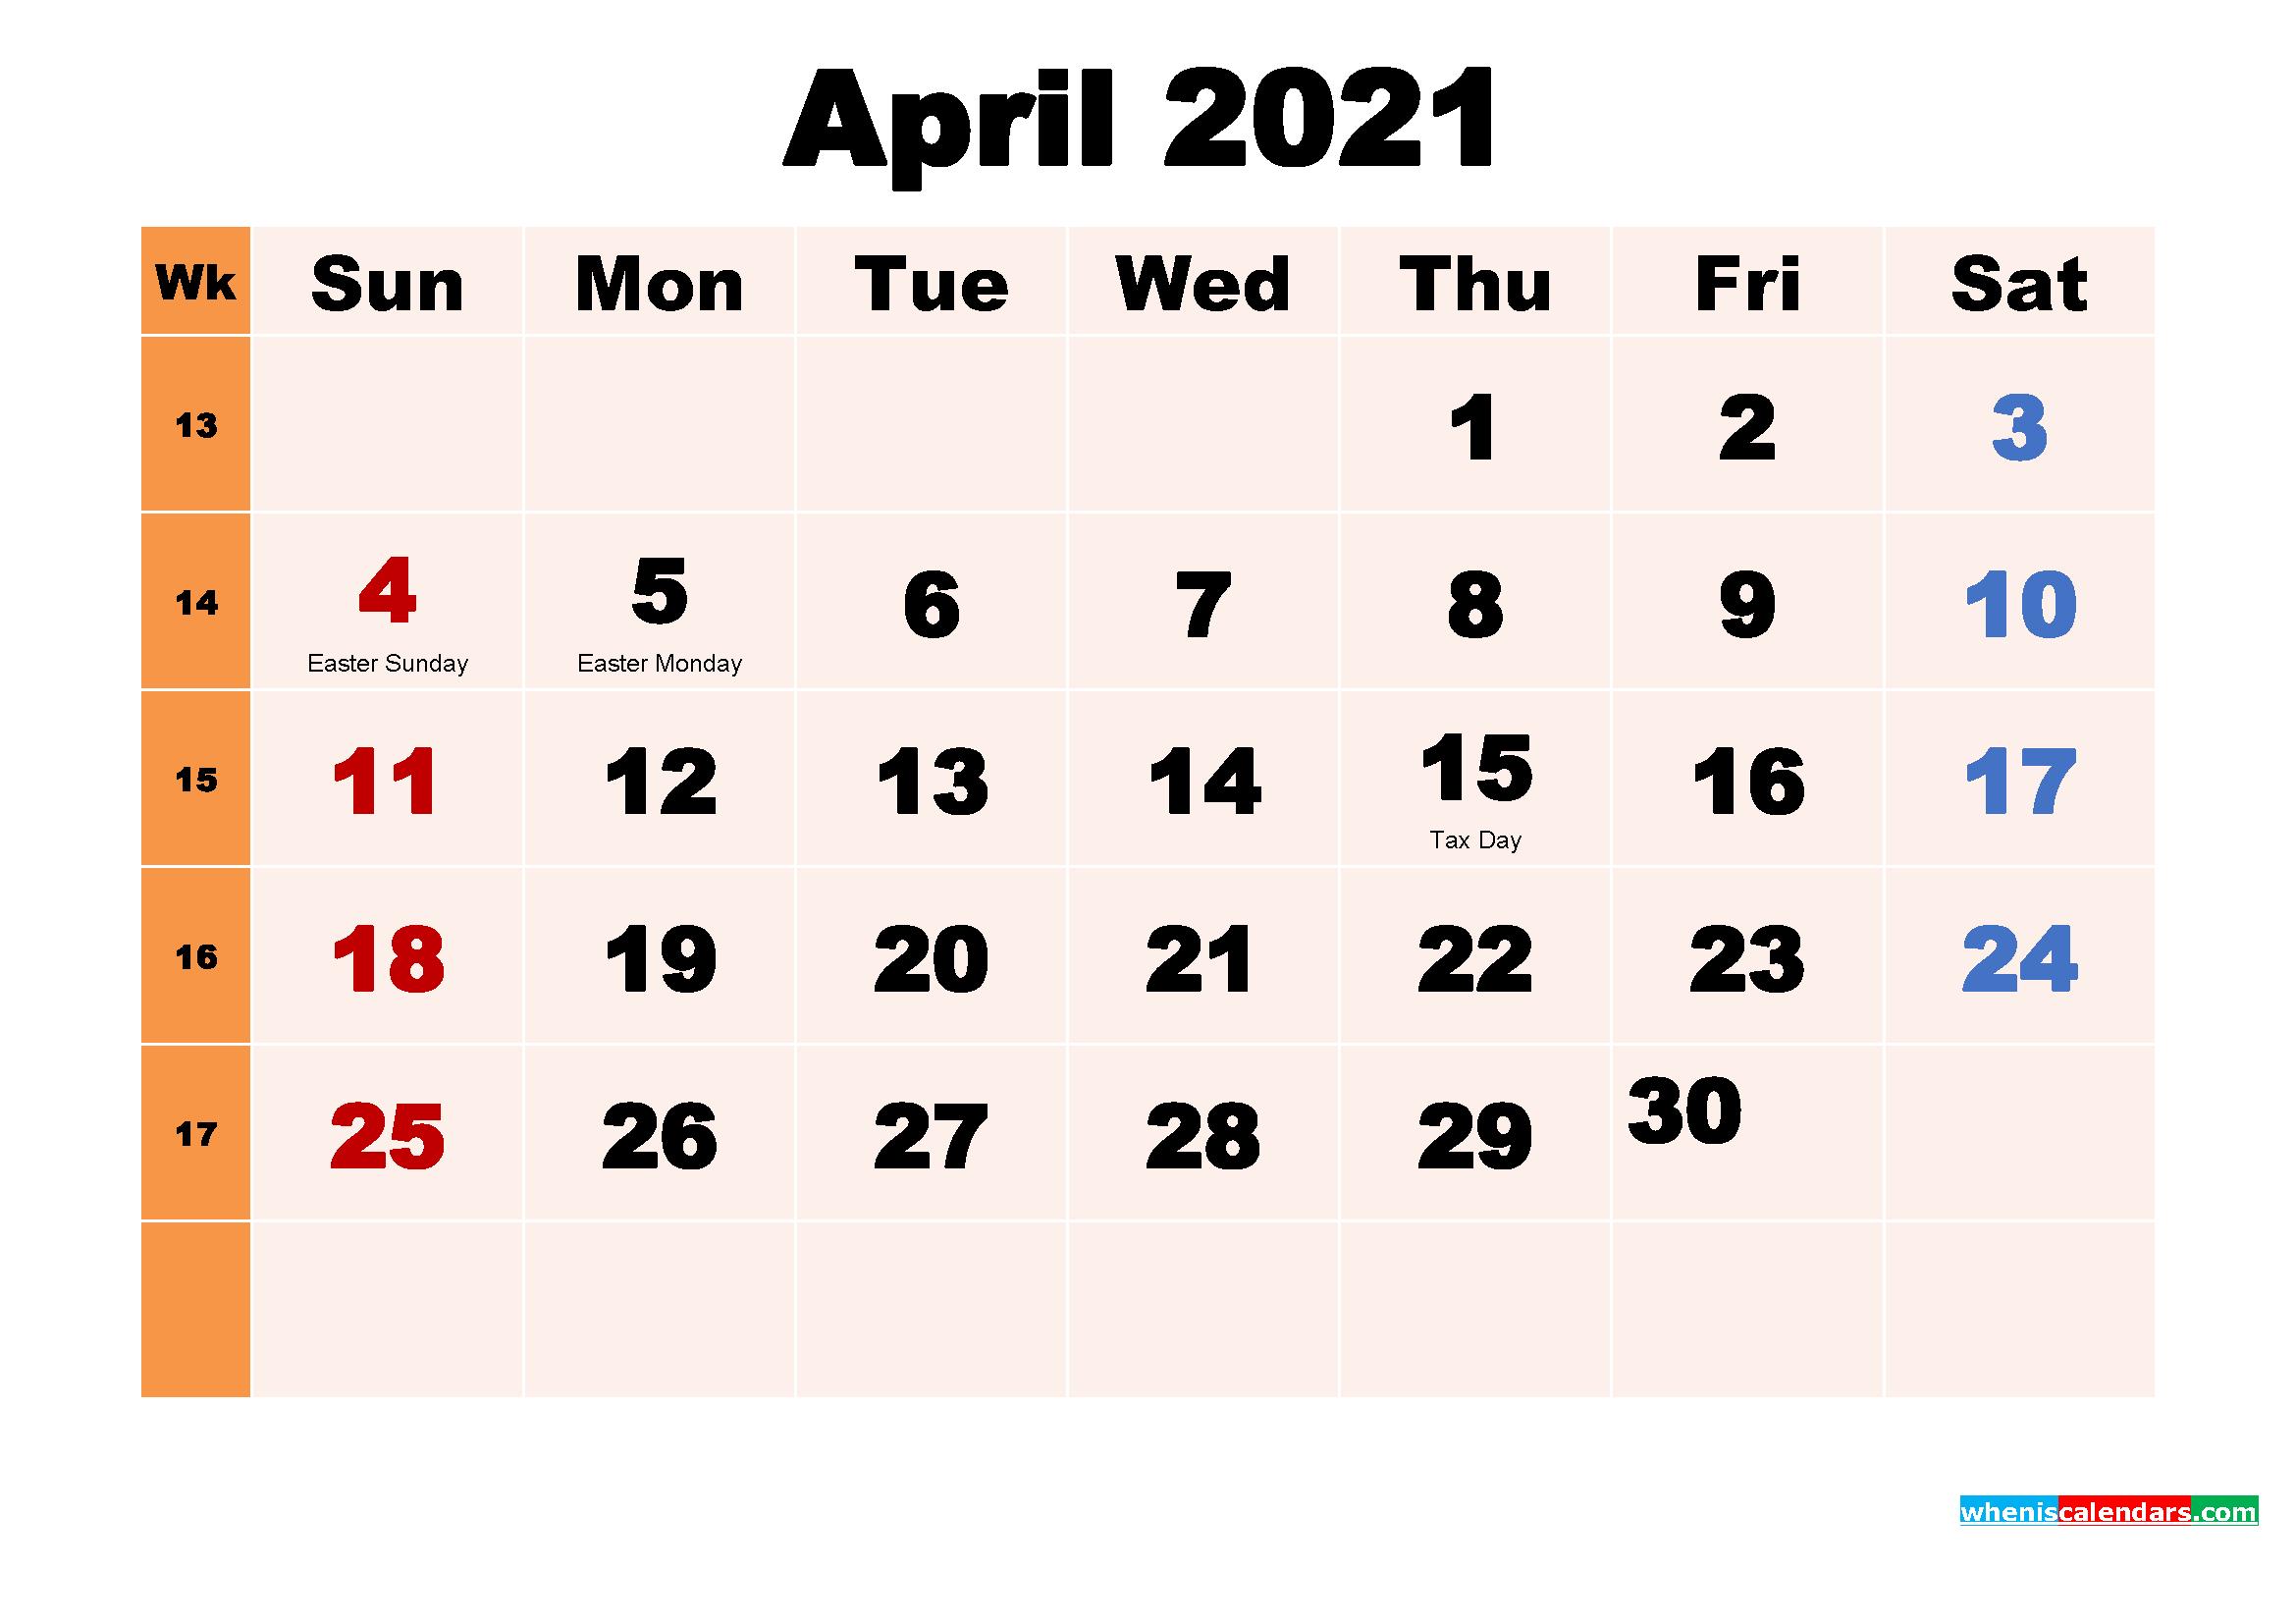 April 2021 Calendar Wallpaper Free Download – Free Printable